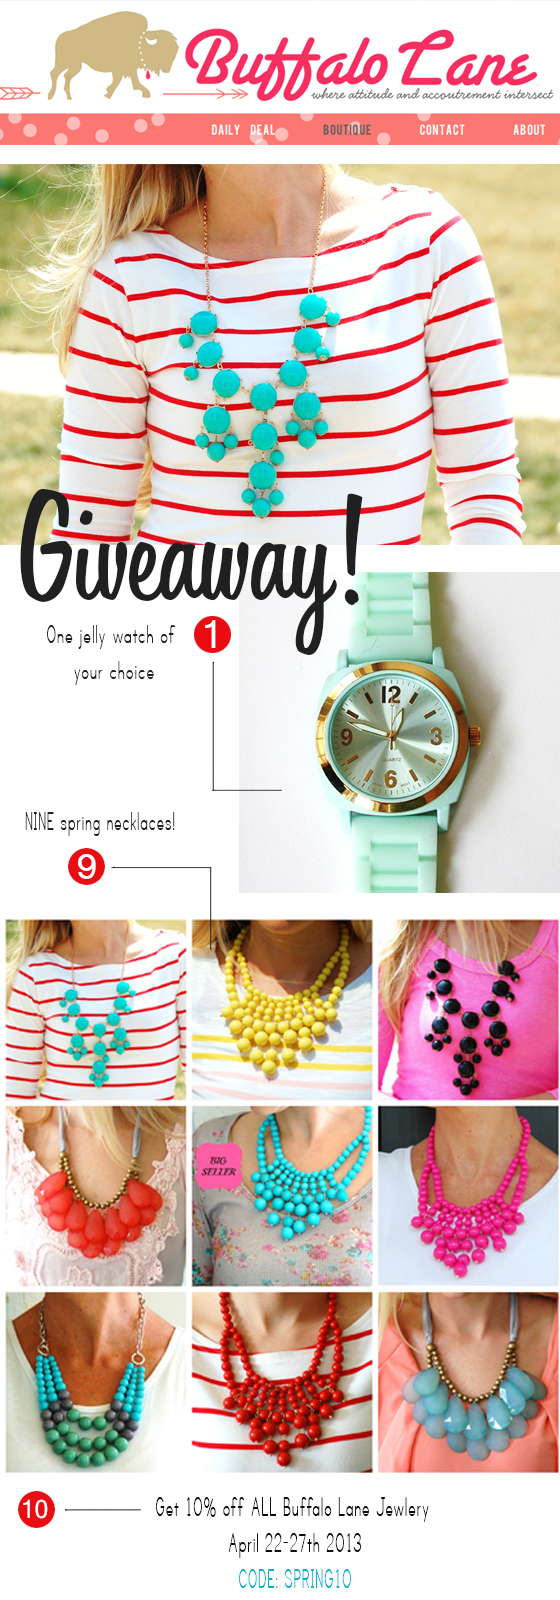 buffalo lane giveaway